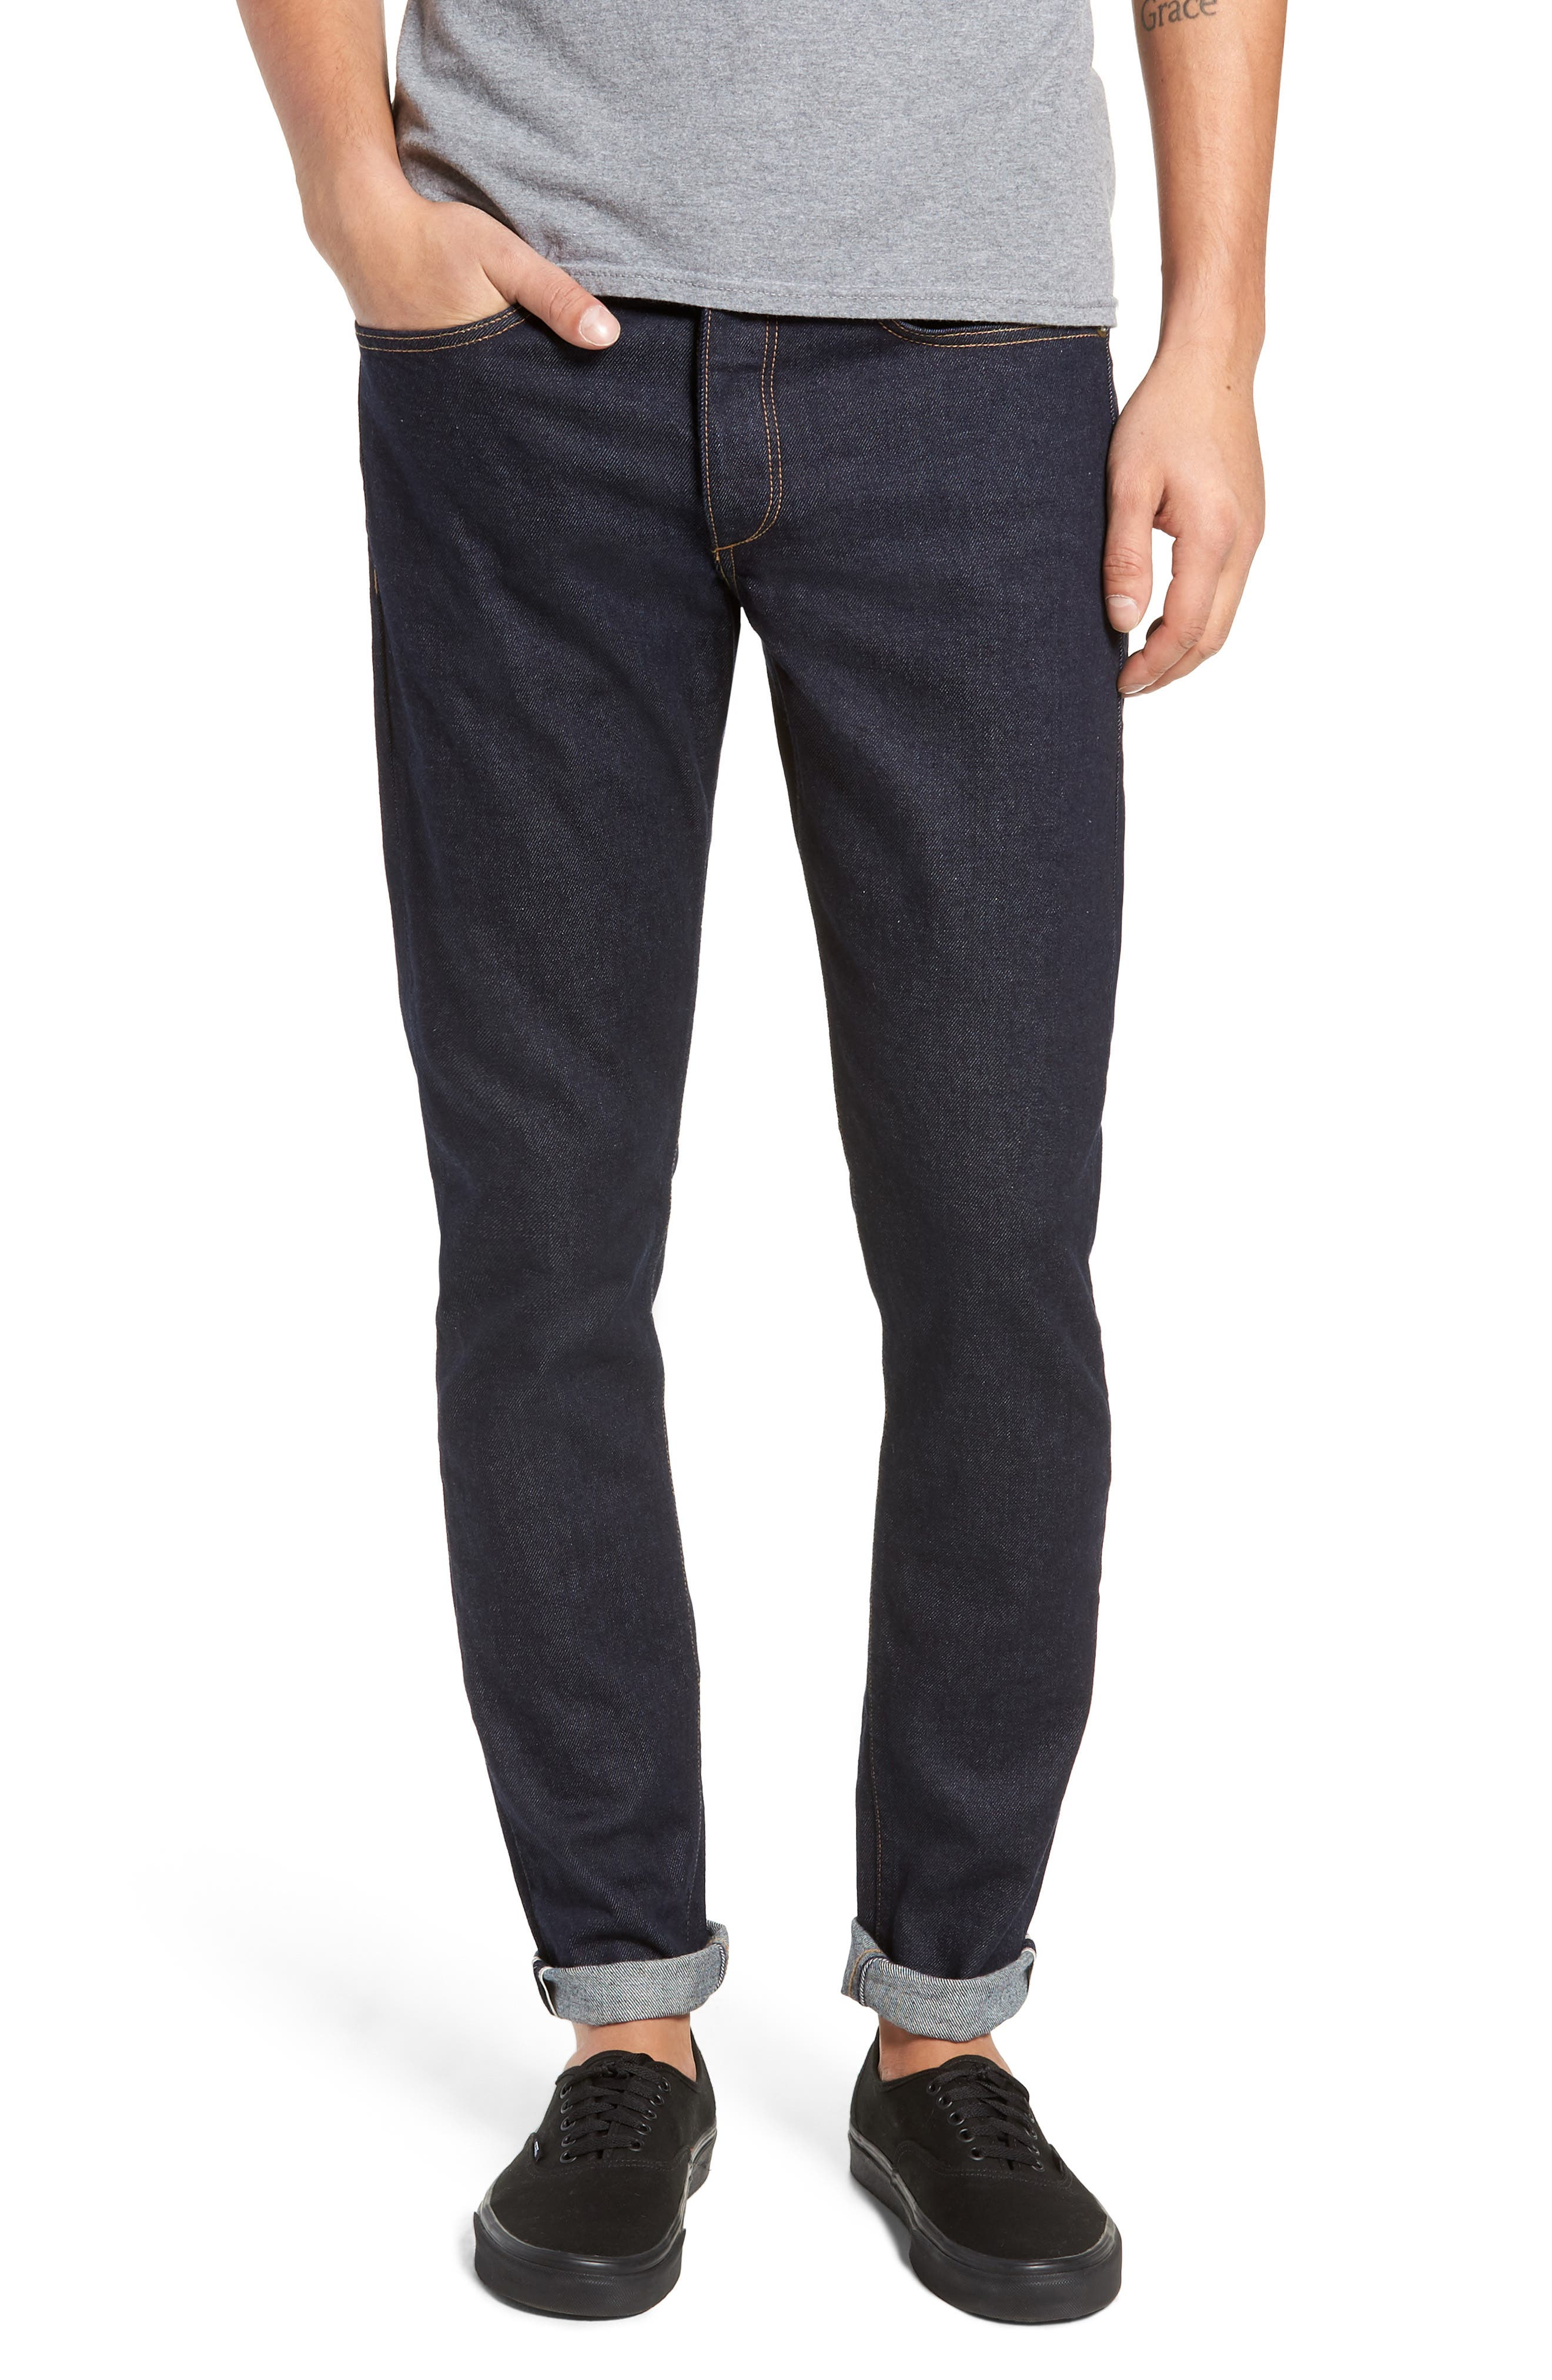 Fit 1 Skinny Fit Jeans,                             Main thumbnail 1, color,                             INDIGO RINSE SELVEDGE